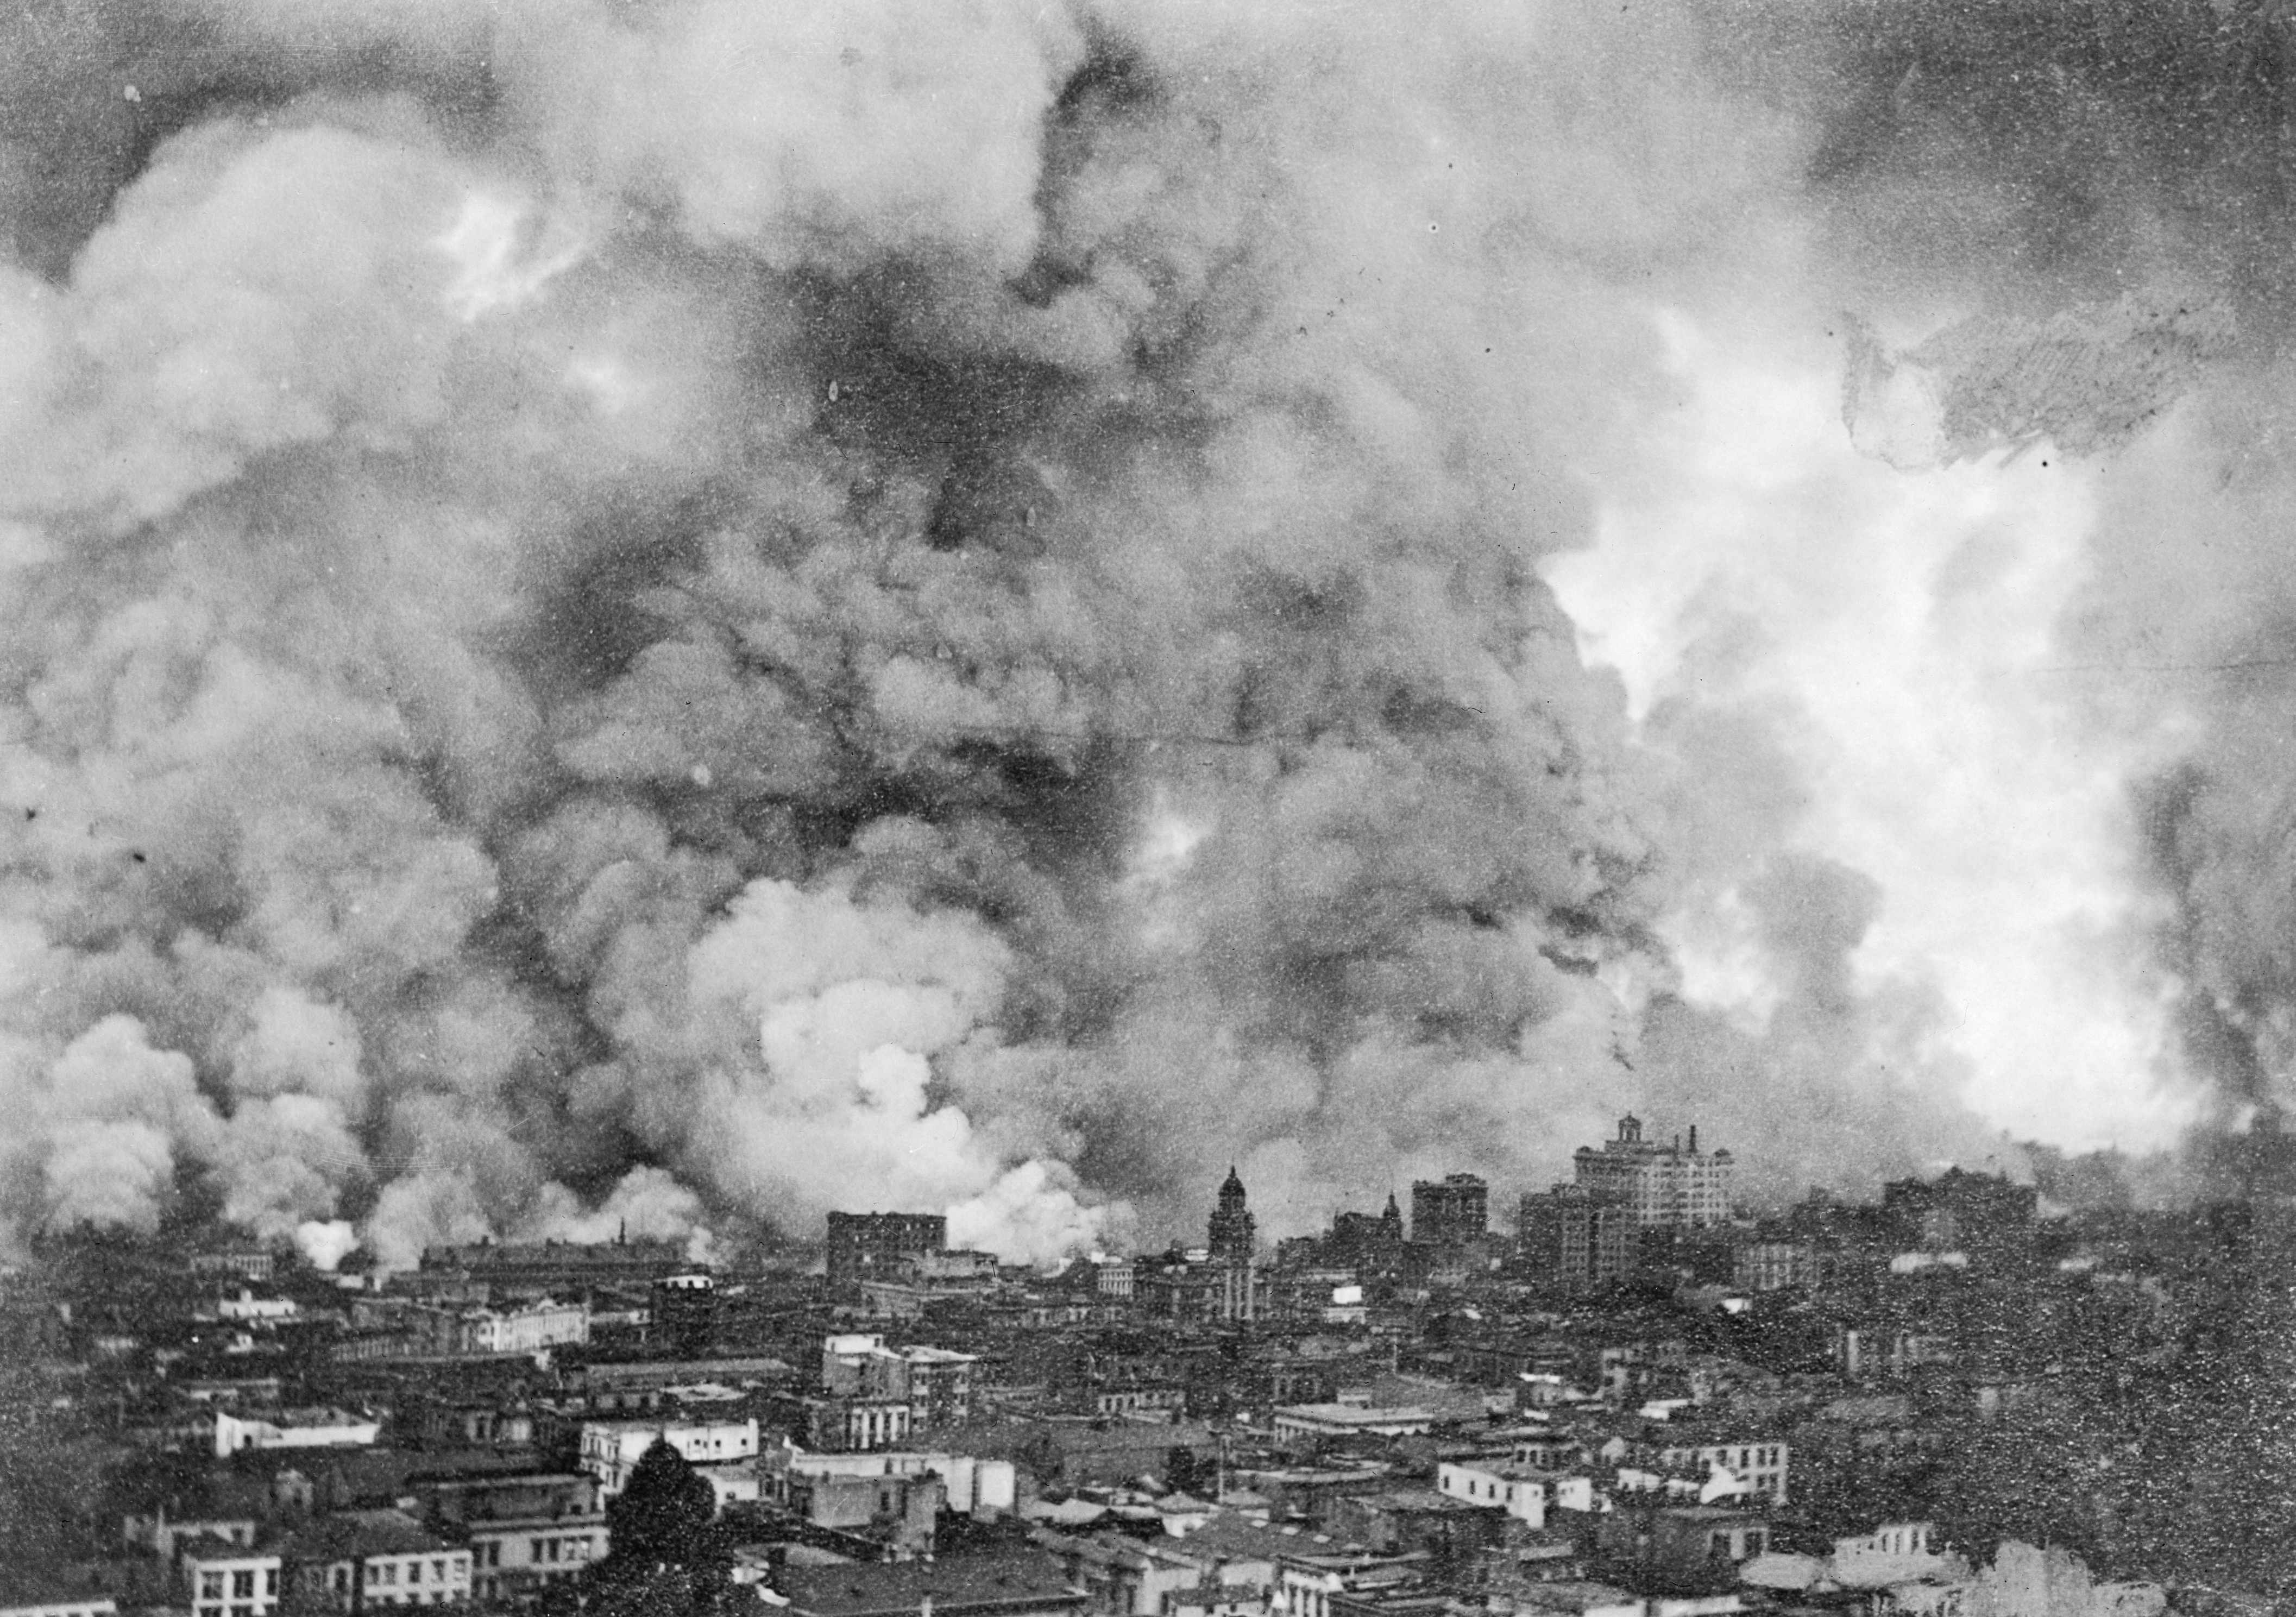 an analysis of the devastation of the 1906 earthquake in san francisco The devastation of the 1906 san francisco earthquake is revealed through this  long-lost footage discovered at a california flea market.